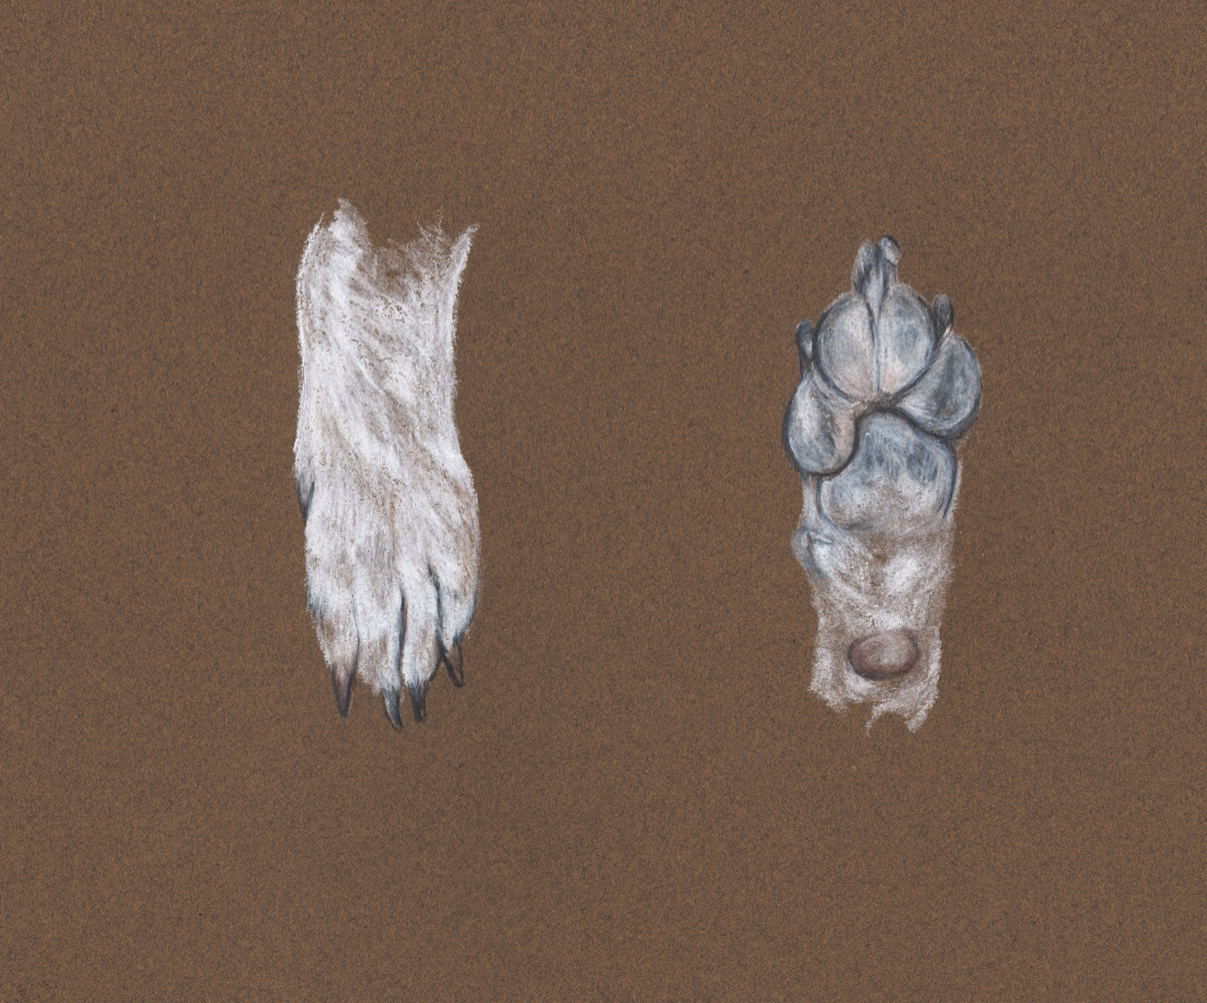 Puppy Paws   Canis lupus familiaris   Colored Pencil on Toned Paper